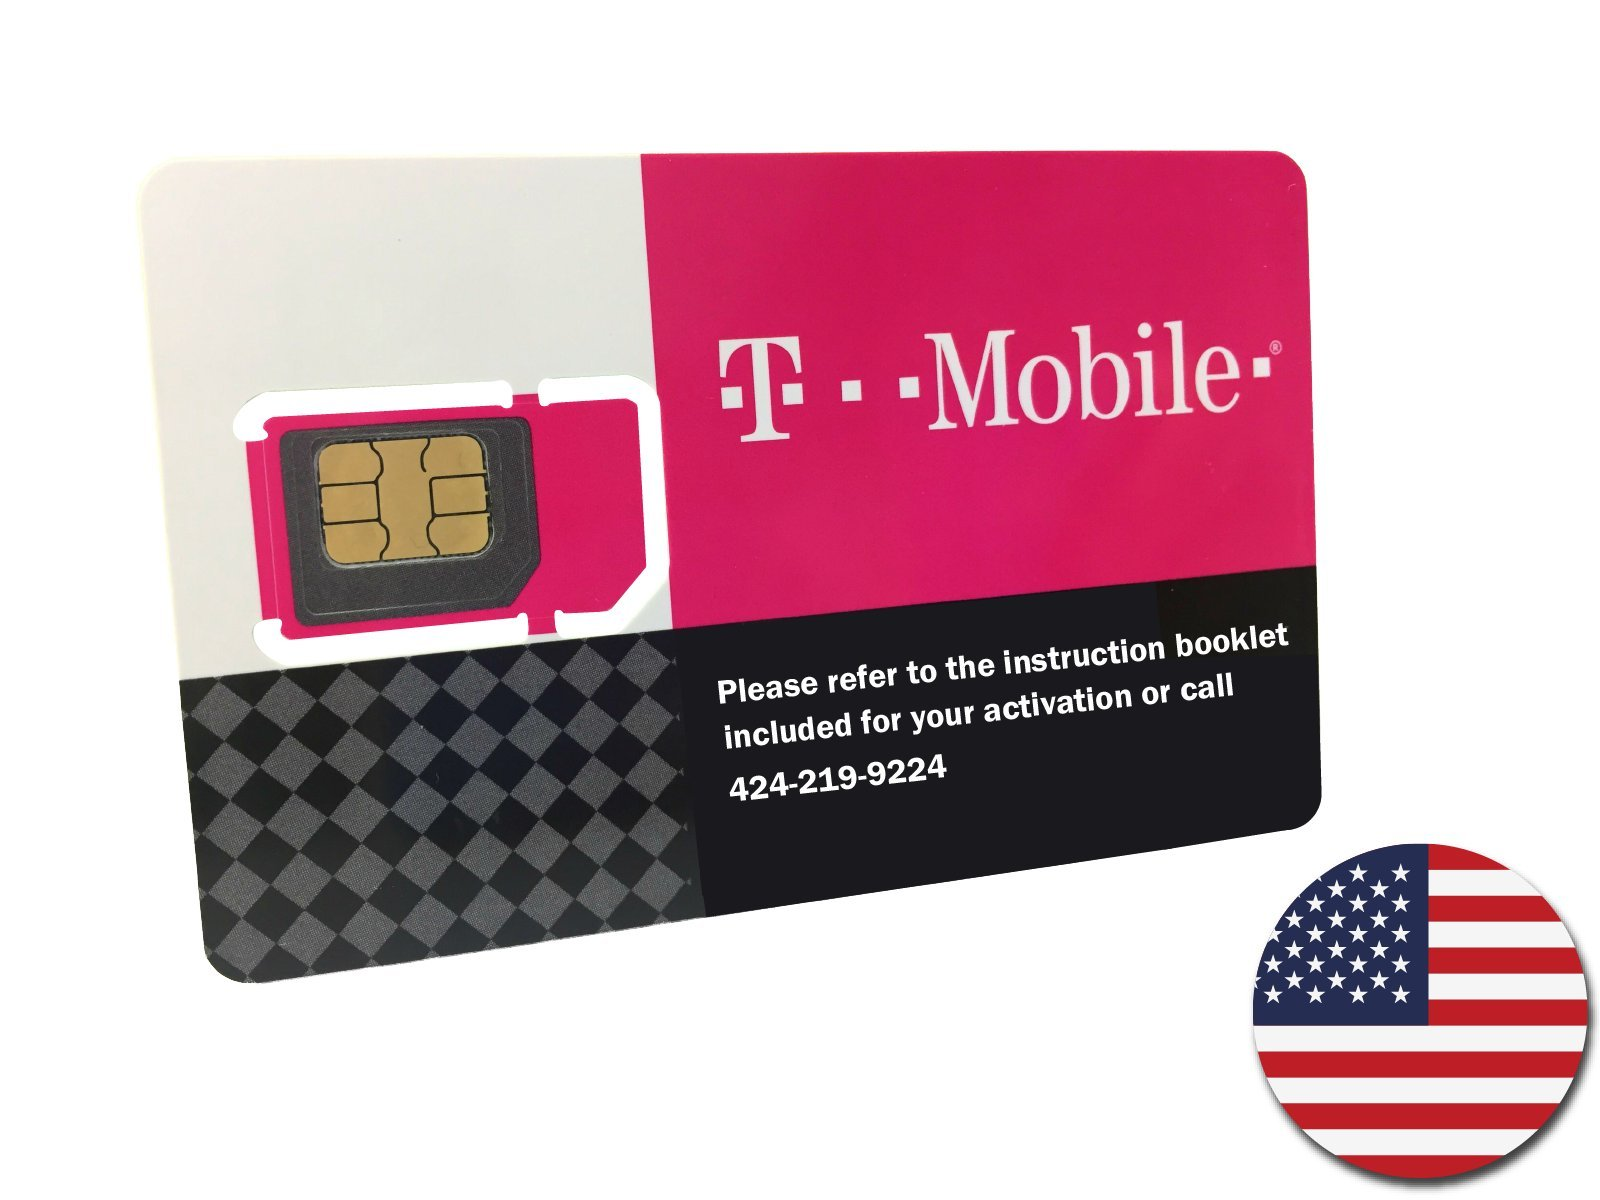 Check Out T Mobile UsProducts On Amazon!